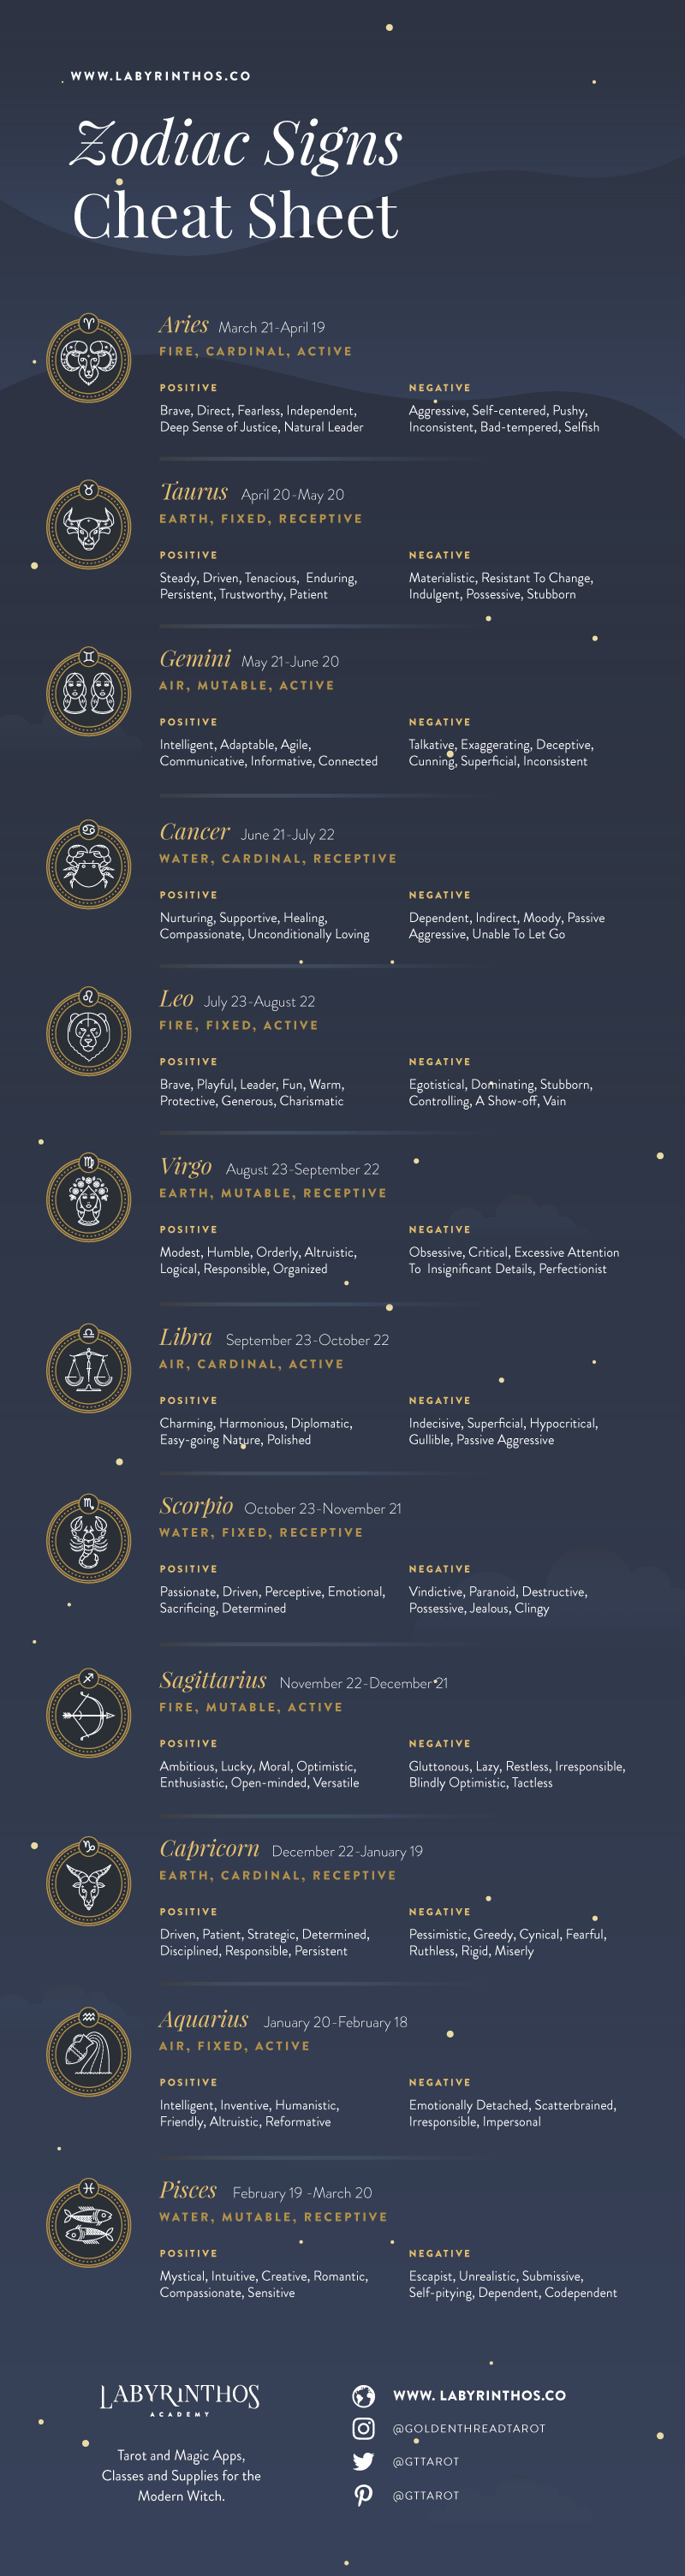 Infographic list of zodiac signs dates strengths weaknesses also meanings symbols  labyrinthos rh